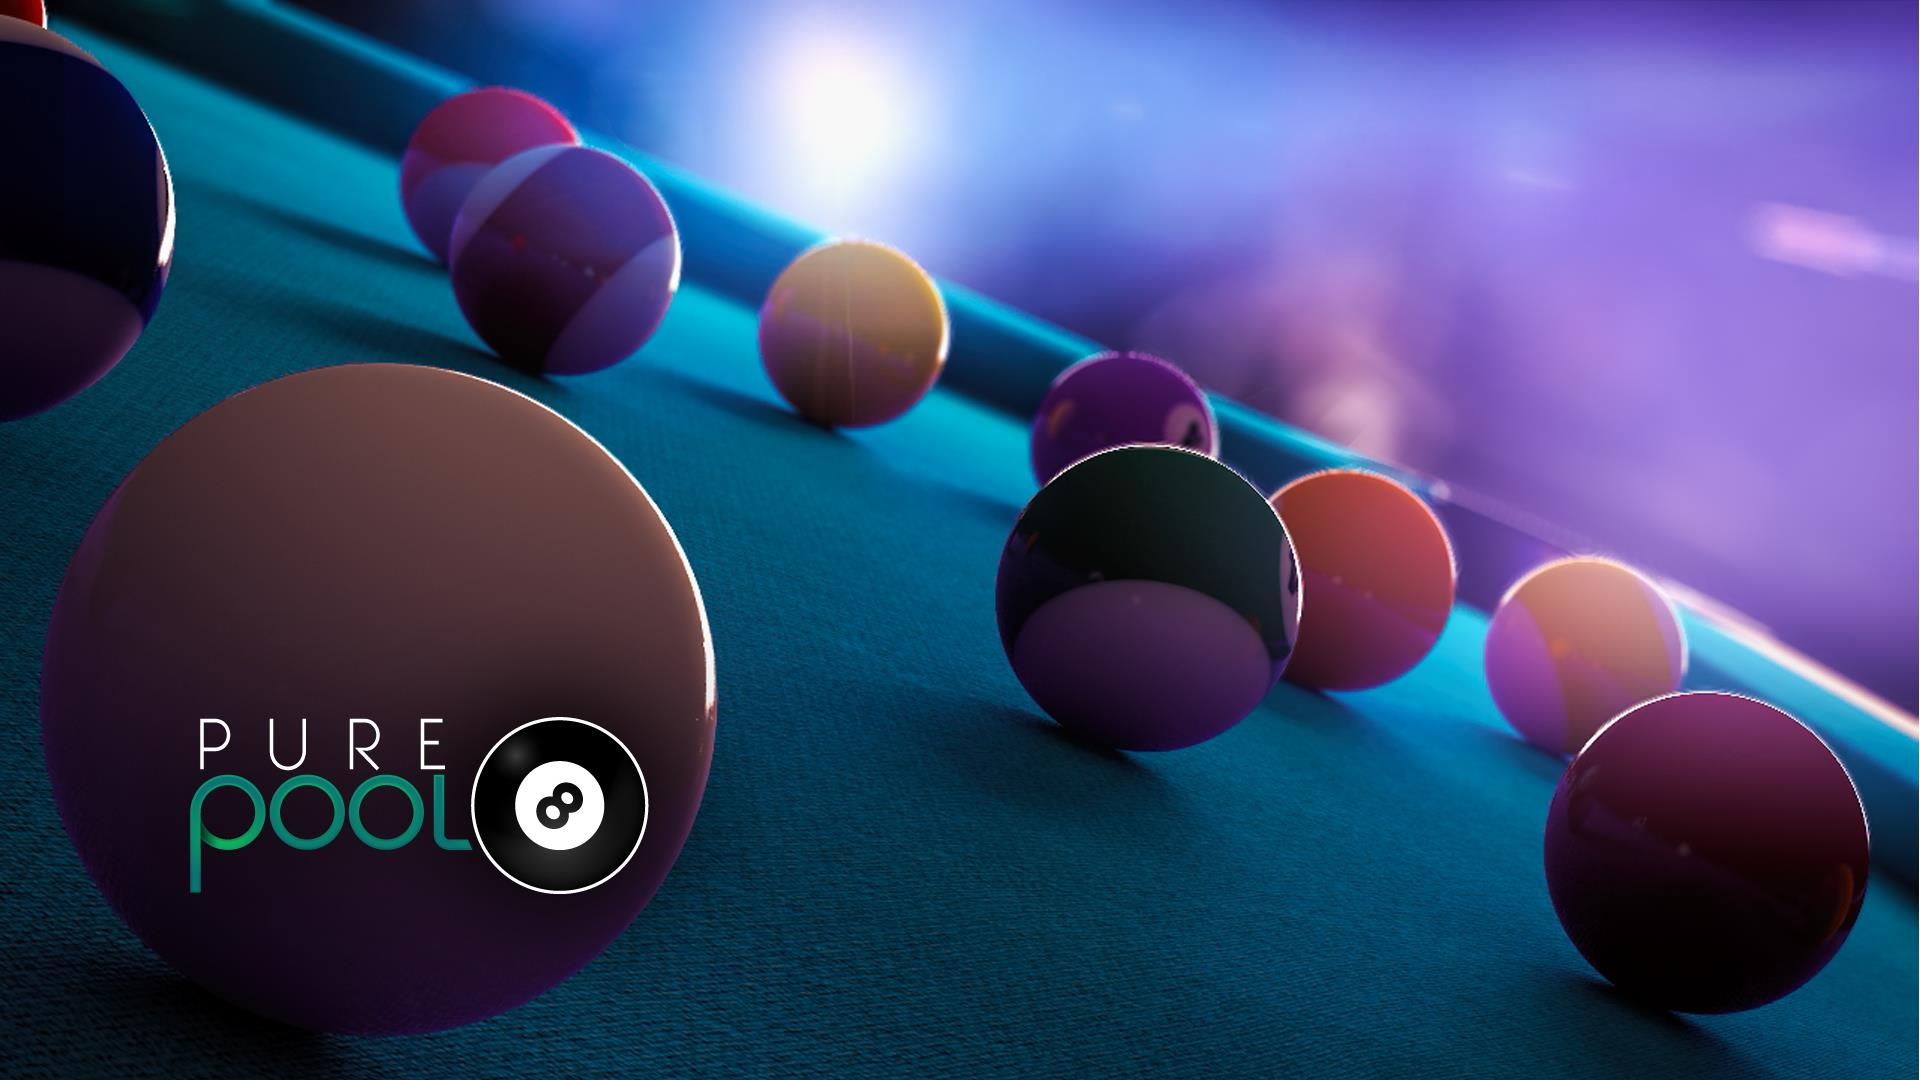 Pool Games Wallpaper e3 2